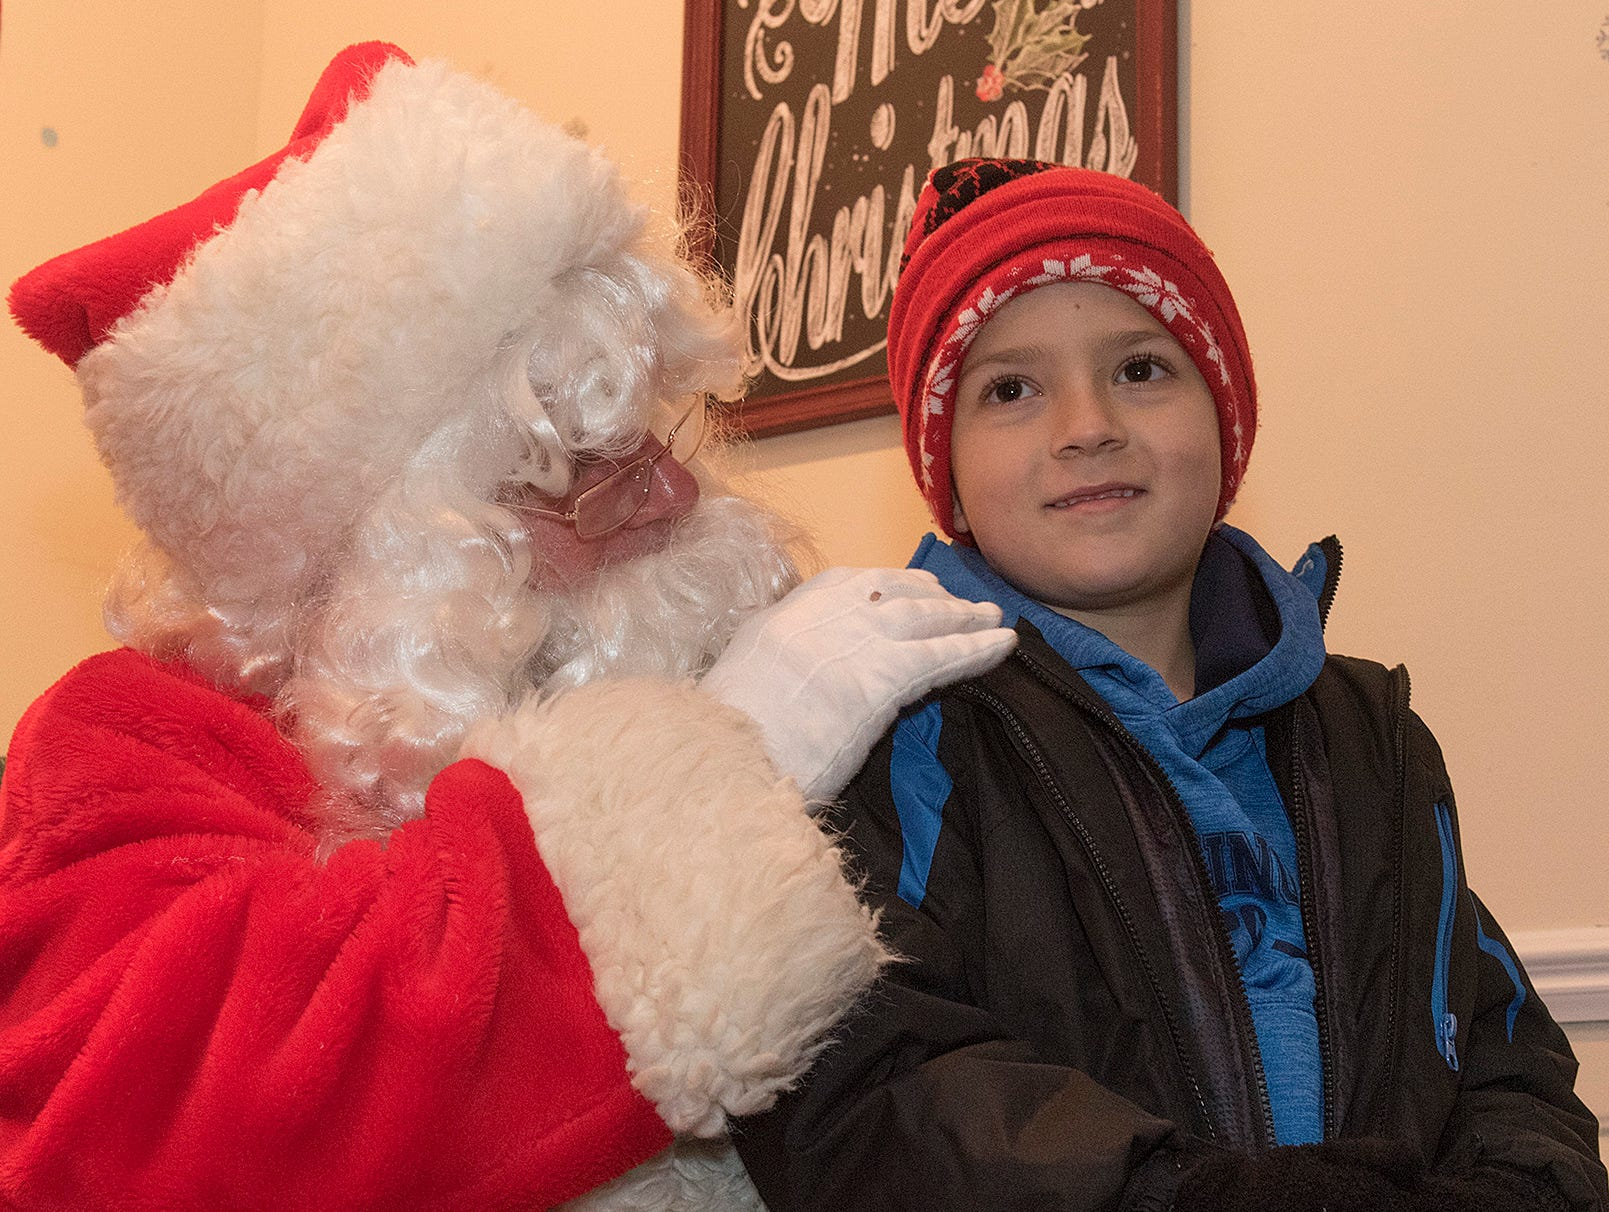 Six year old Robert Marra wonders what he wants for Christmas from Santa Claus.